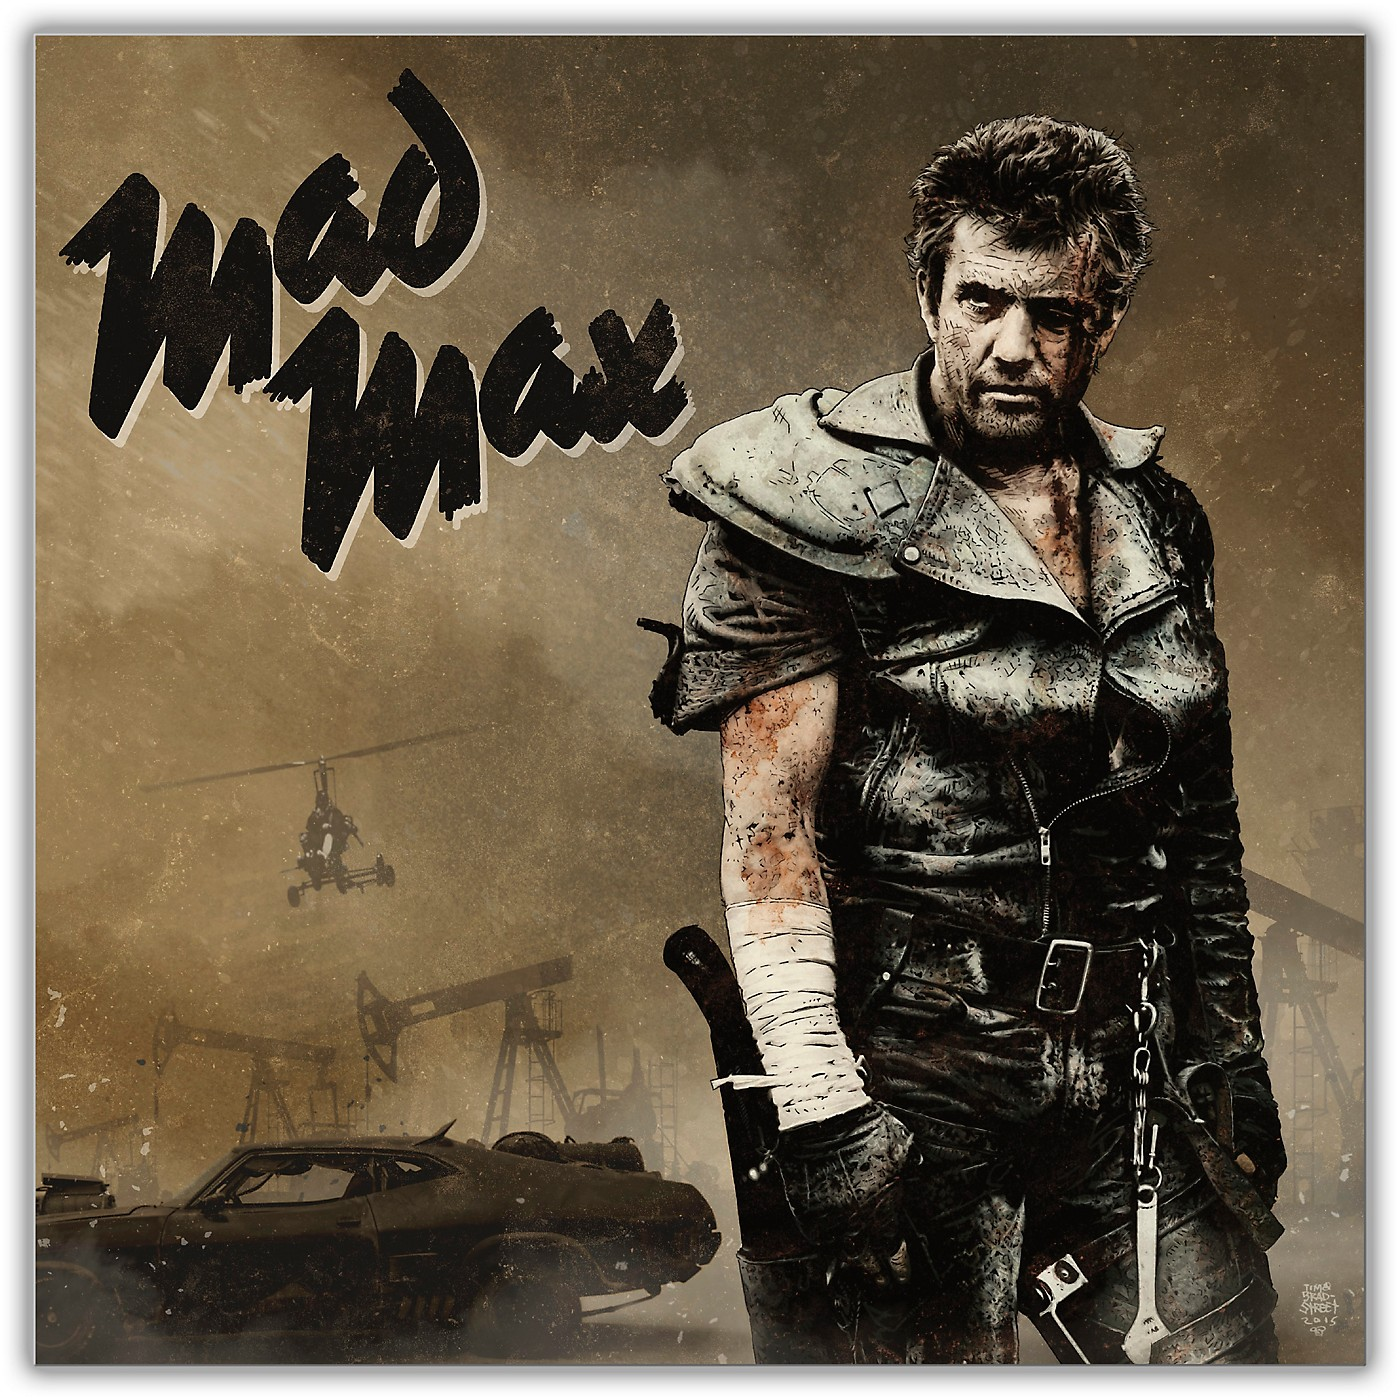 Universal Music Group Various Artists - The Mad Max Trilogy [Vinyl 3 LP] thumbnail